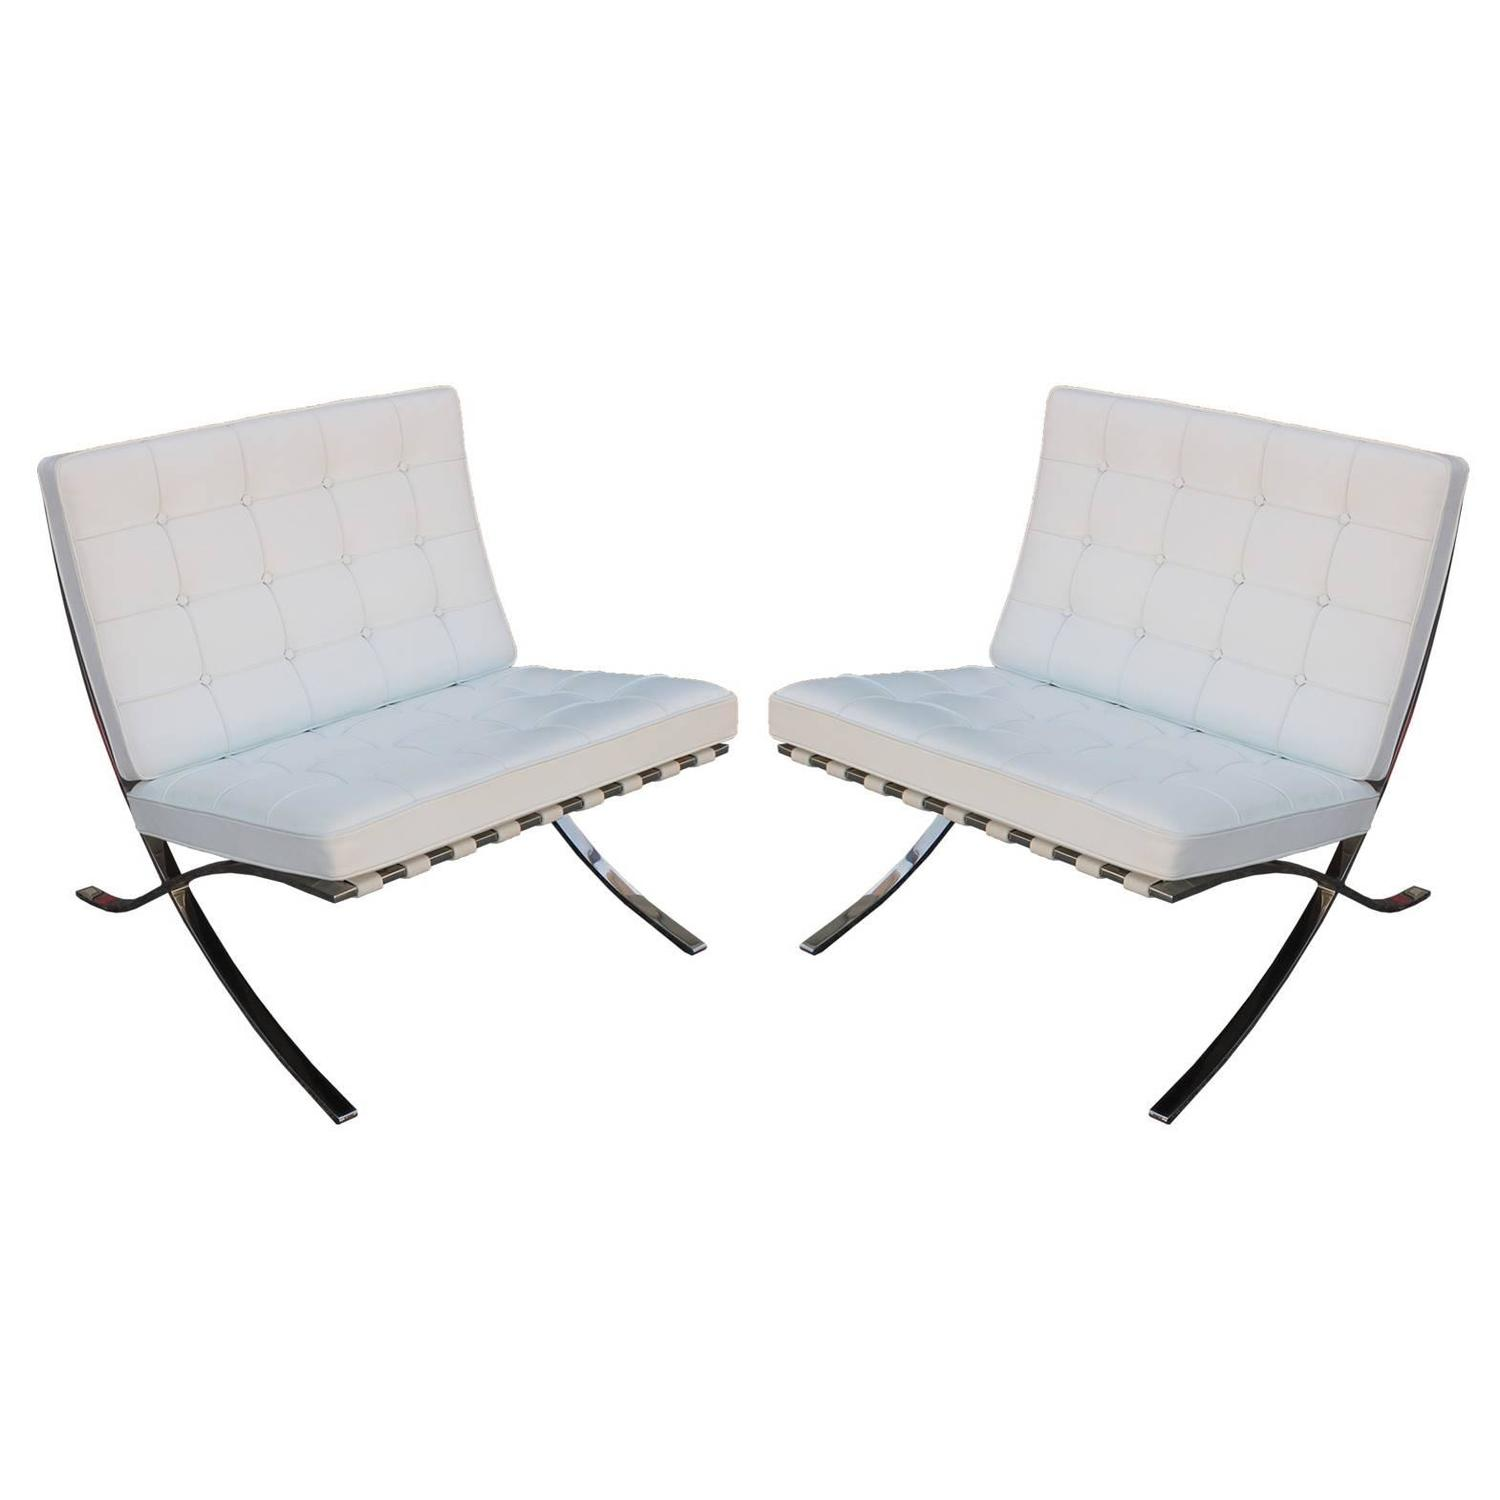 Iconic Pair of Mies van der Rohe Barcelona Chairs in White Leather